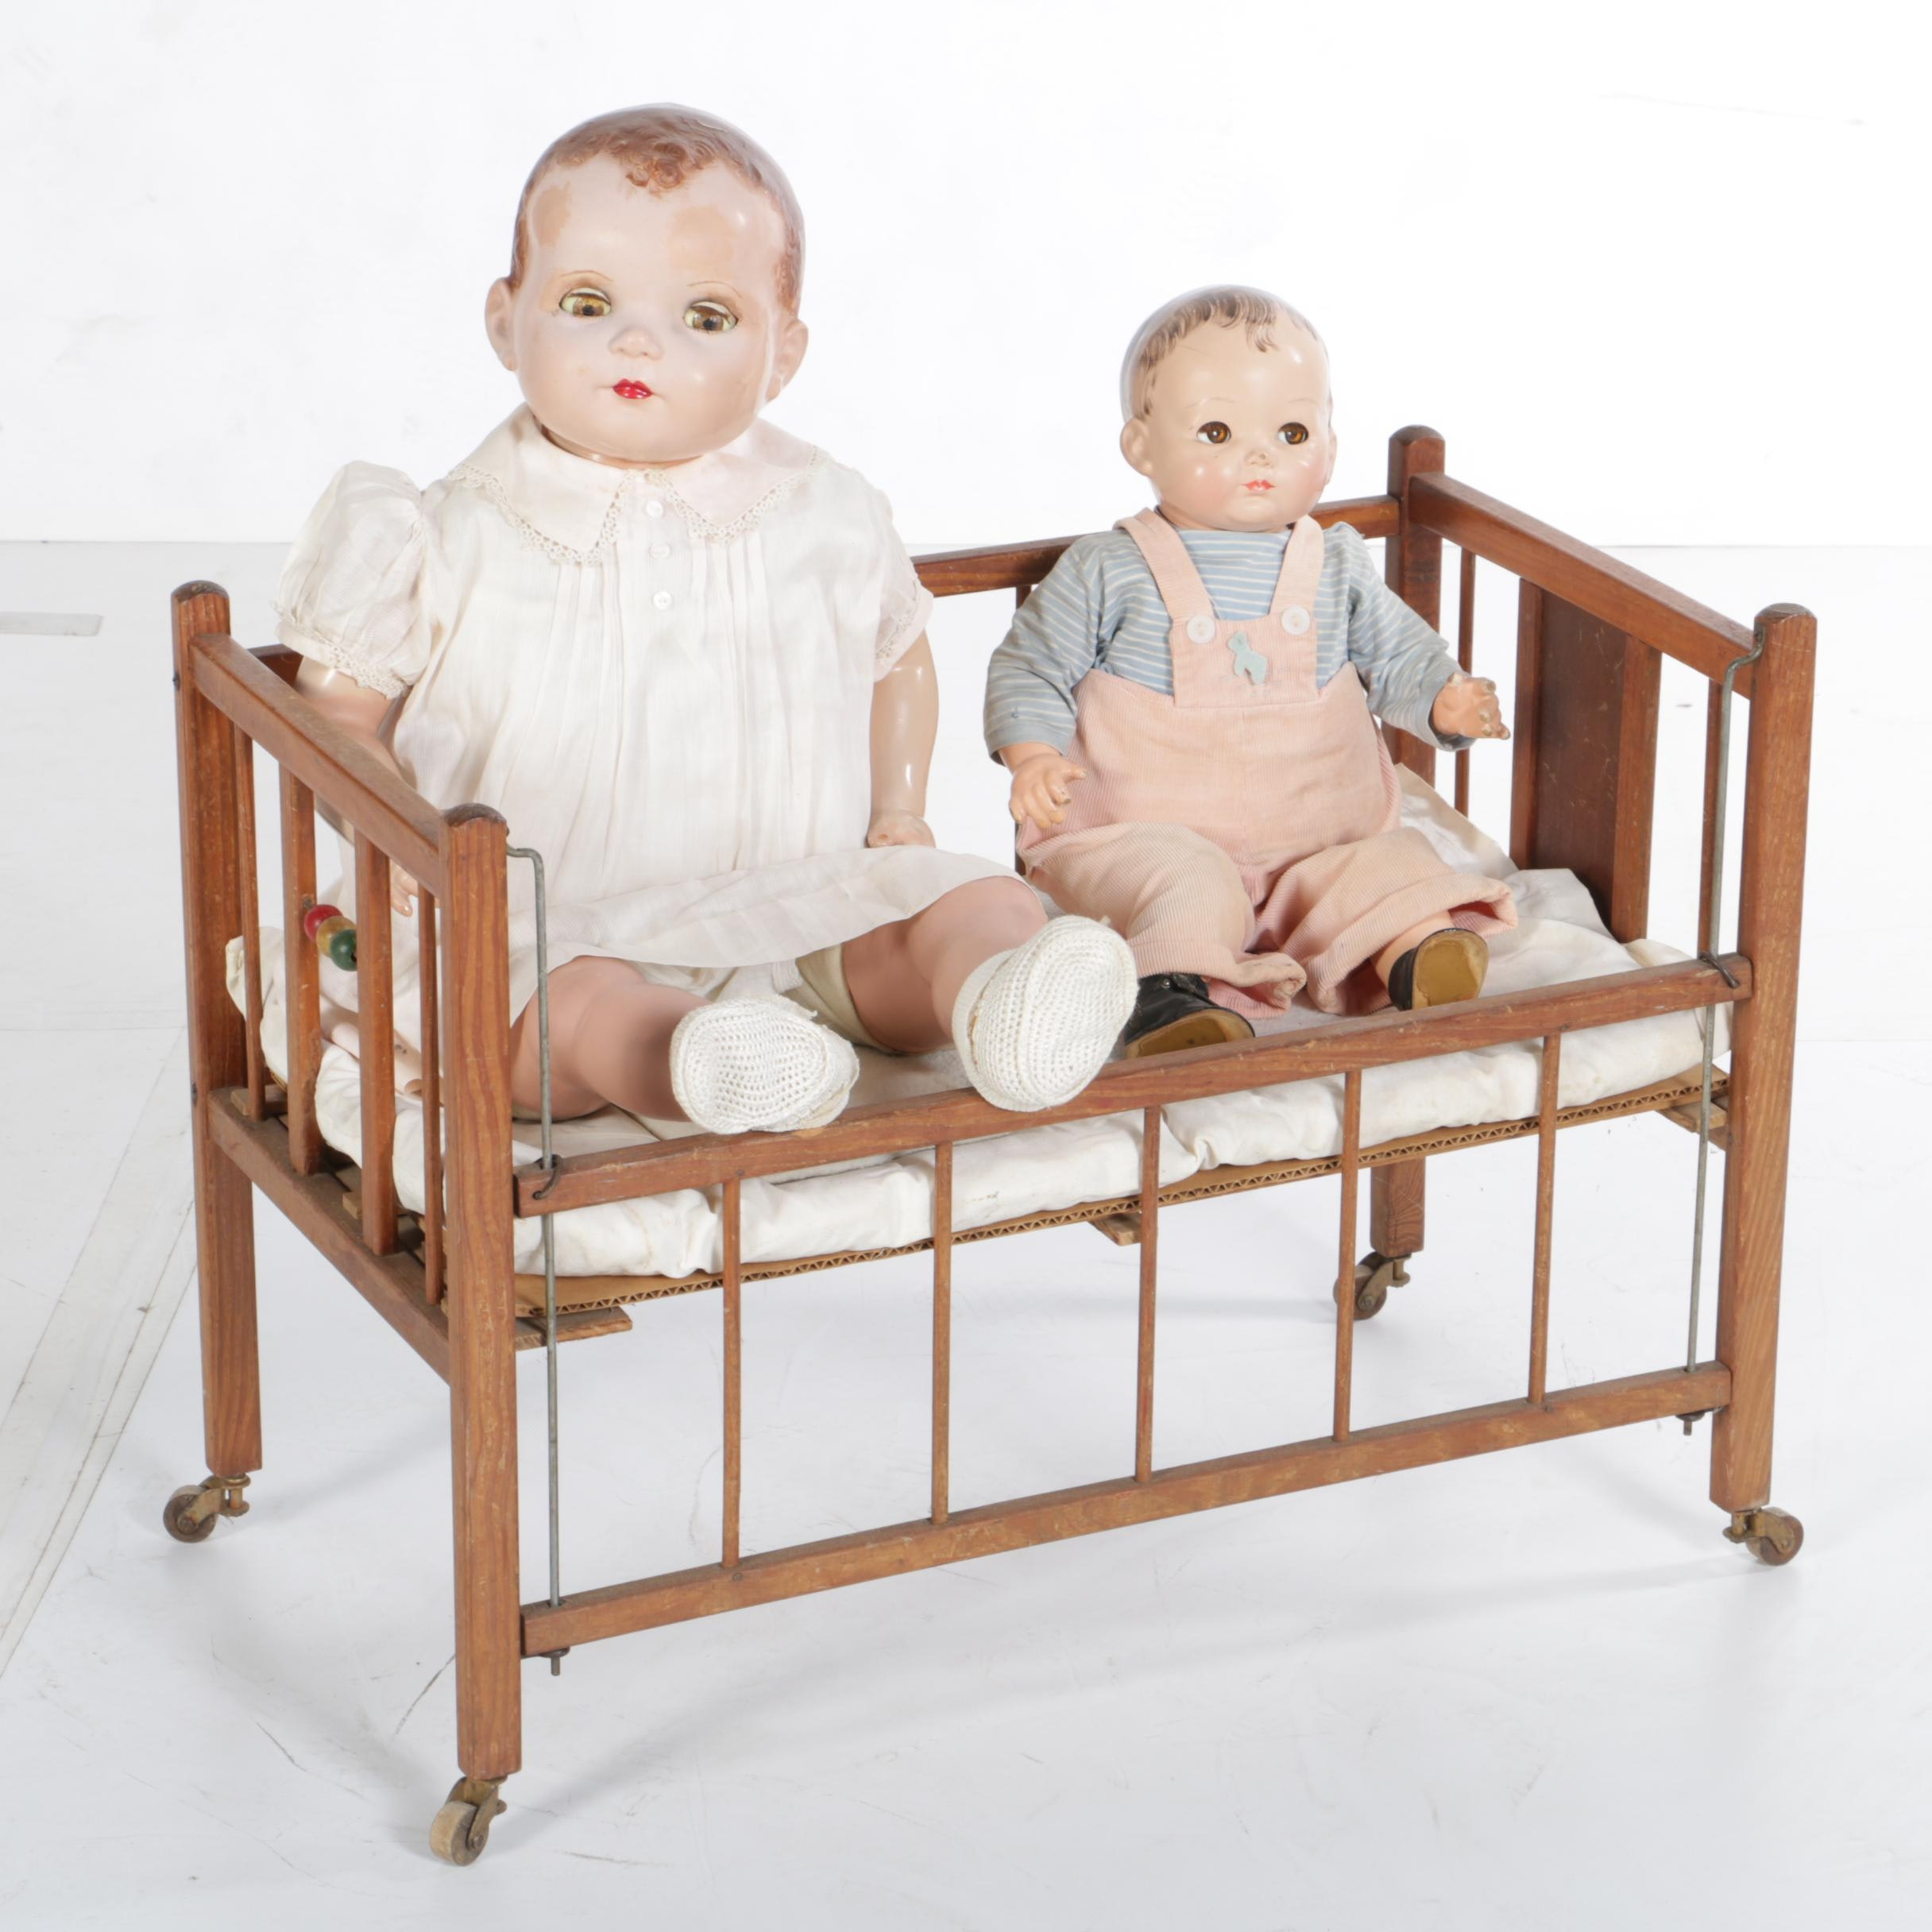 Circa 1950s Composition Baby Dolls with Wooden Toy Crib